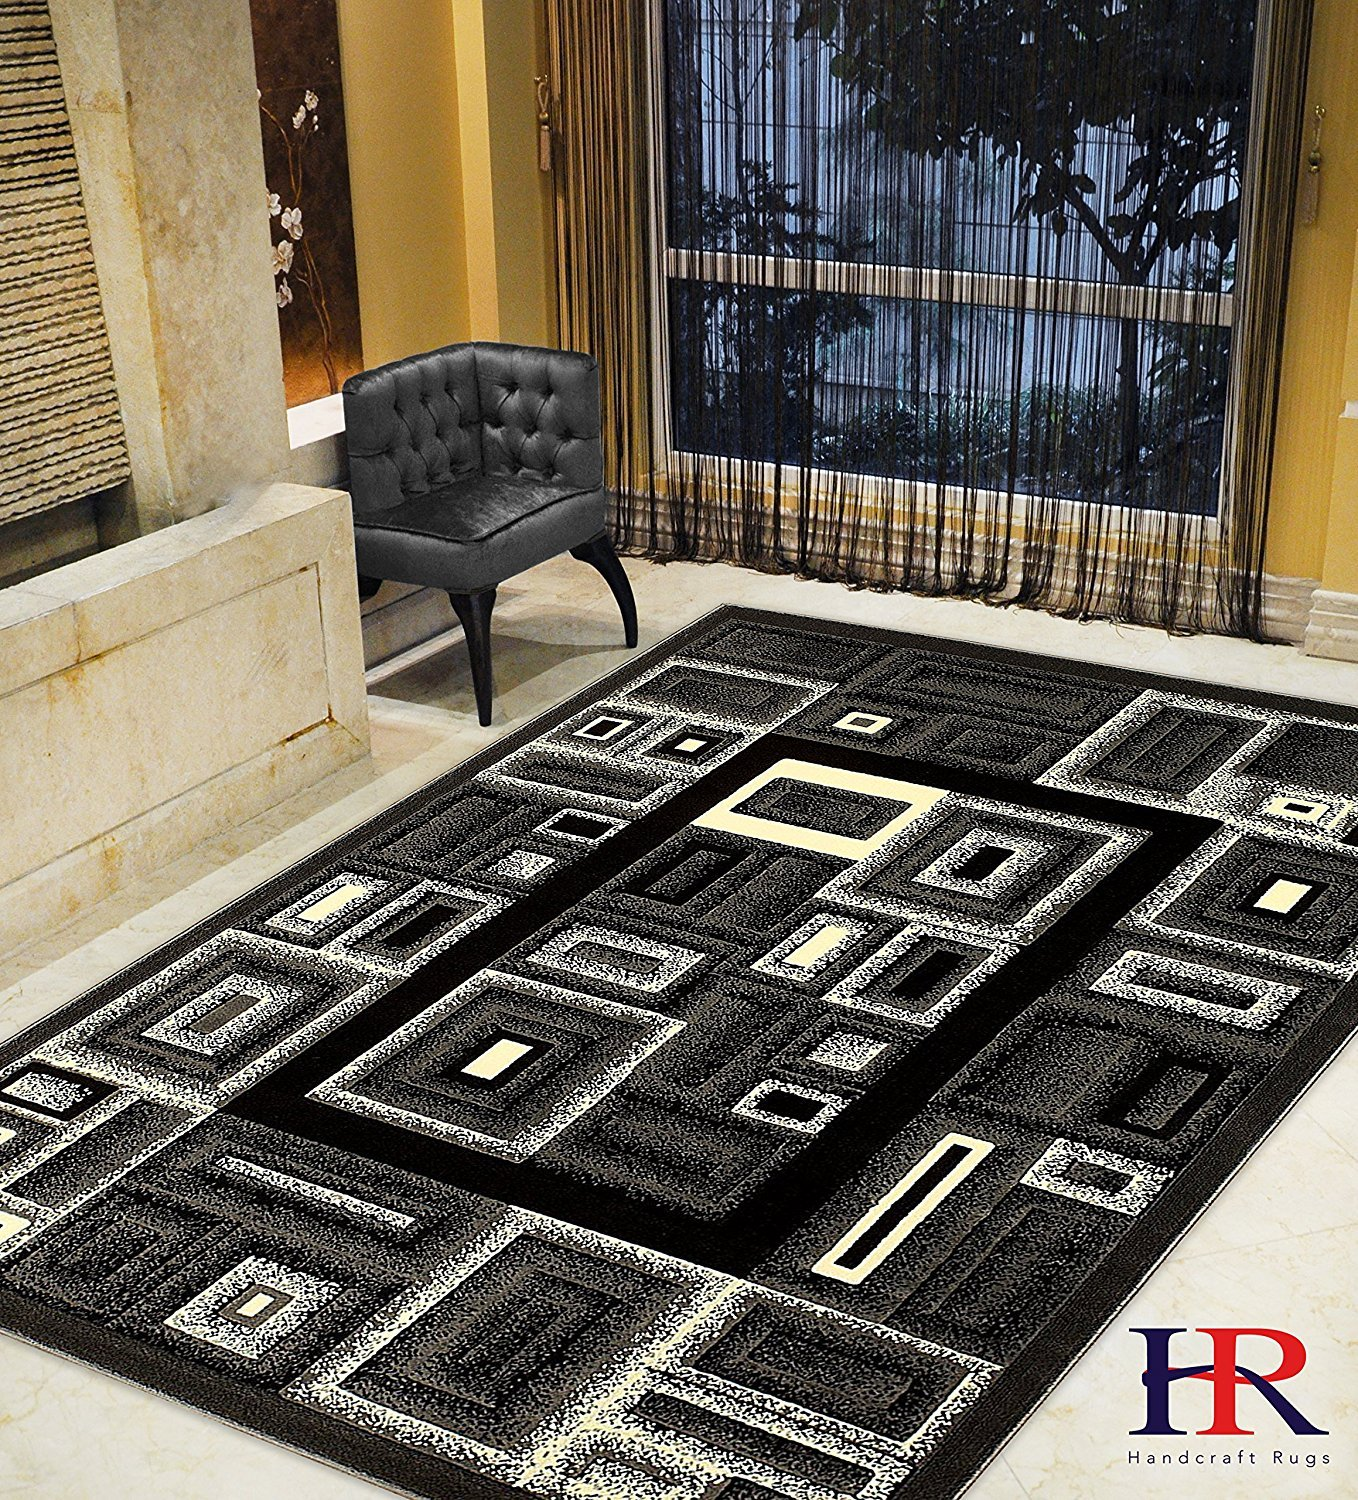 Modern Contemporary Abstract Rug- Frame/Boxy/Cube Pattern-Shed Free Gray/Ivory/White/Black